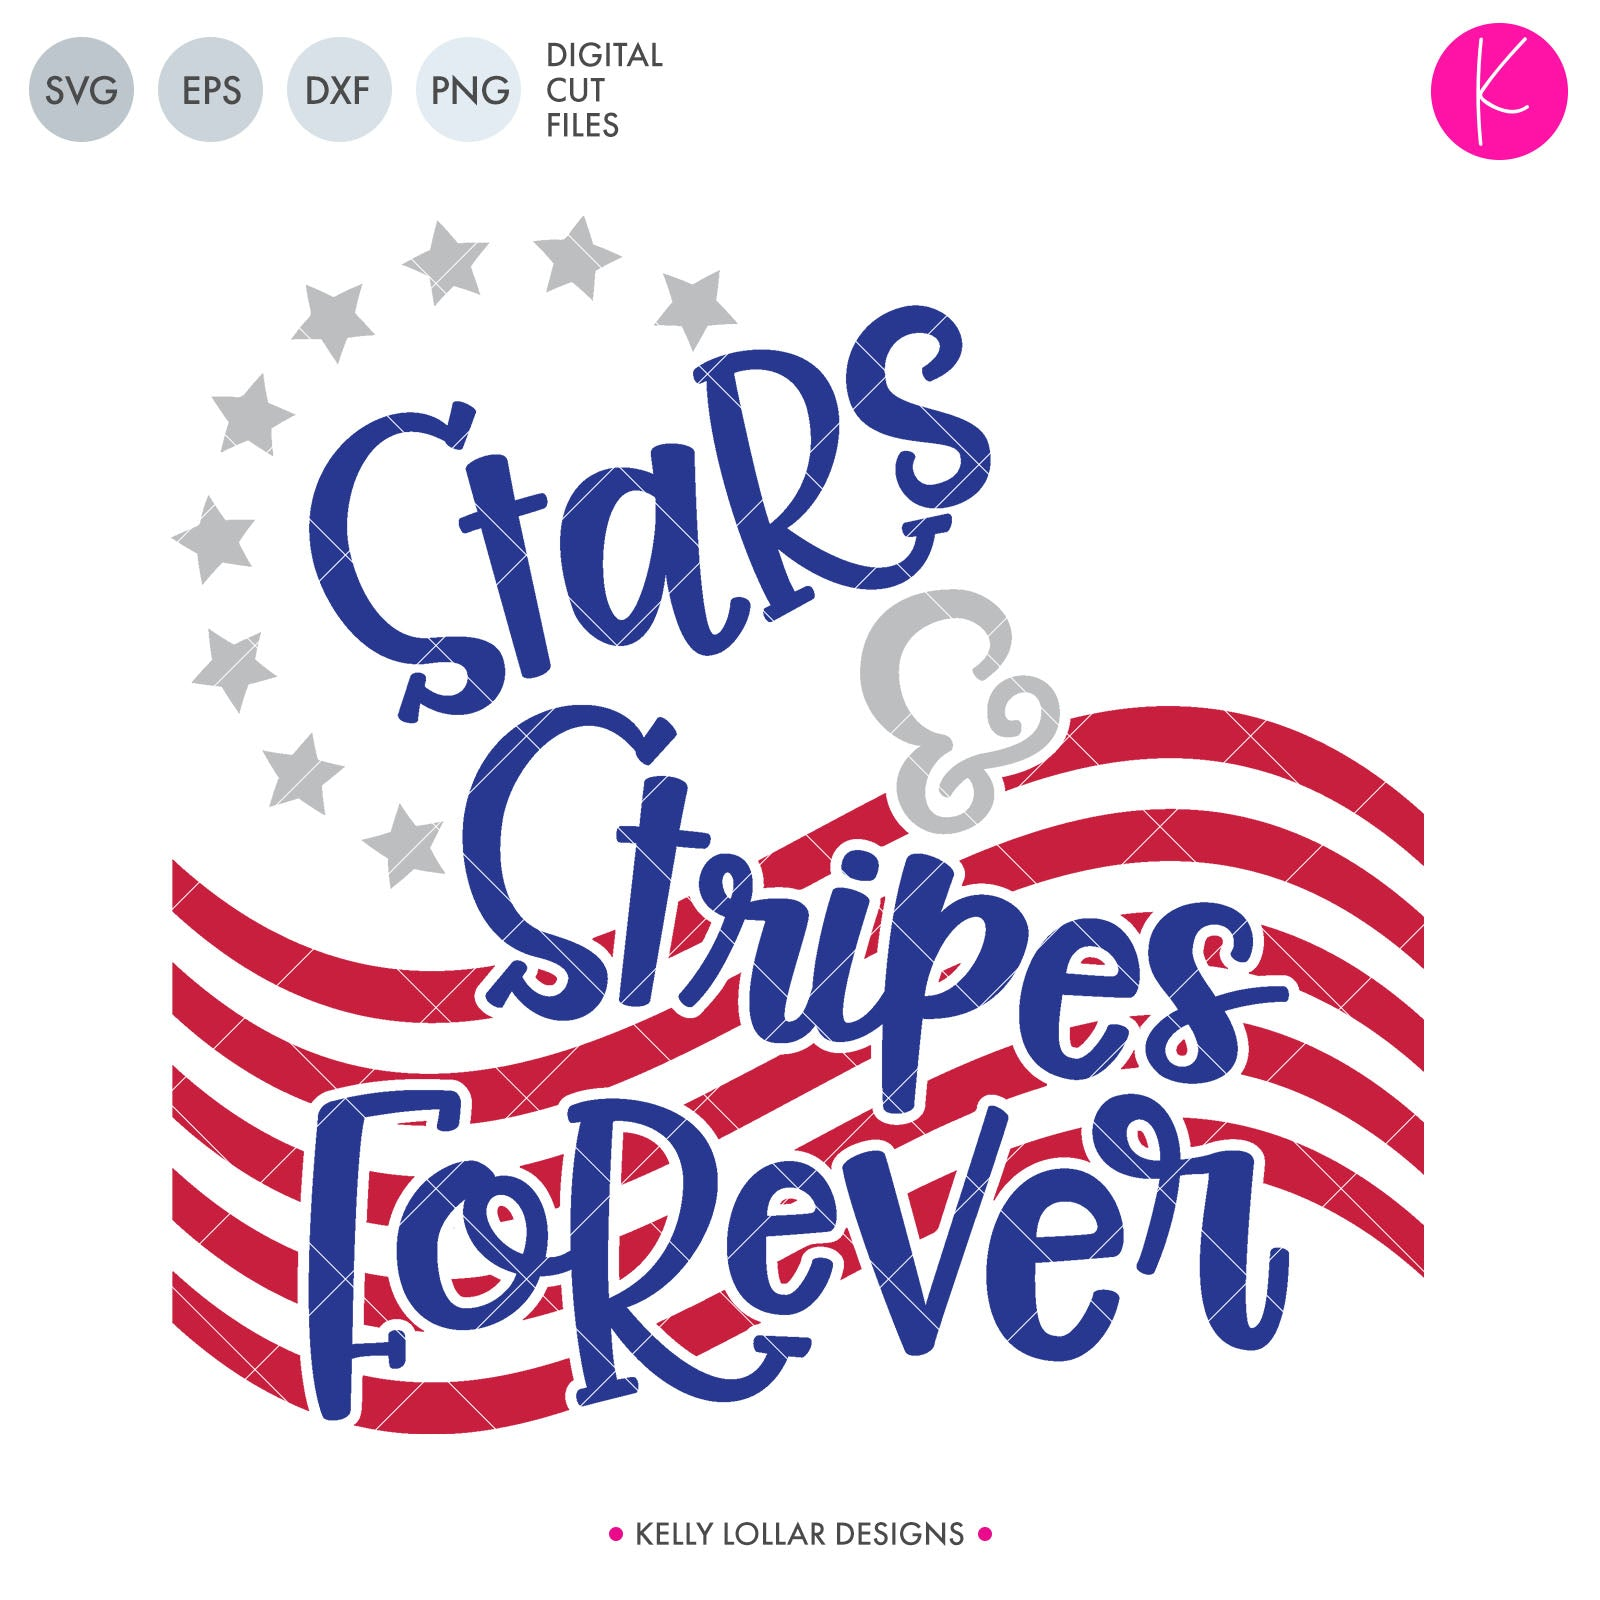 Stars & Stripes Forever | SVG DXF EPS PNG Cut Files Stars and Stripes Forever Fourth of July Shirt Design | SVG DXF PNG Cut Files  1 file for each format welded in 4 pieces